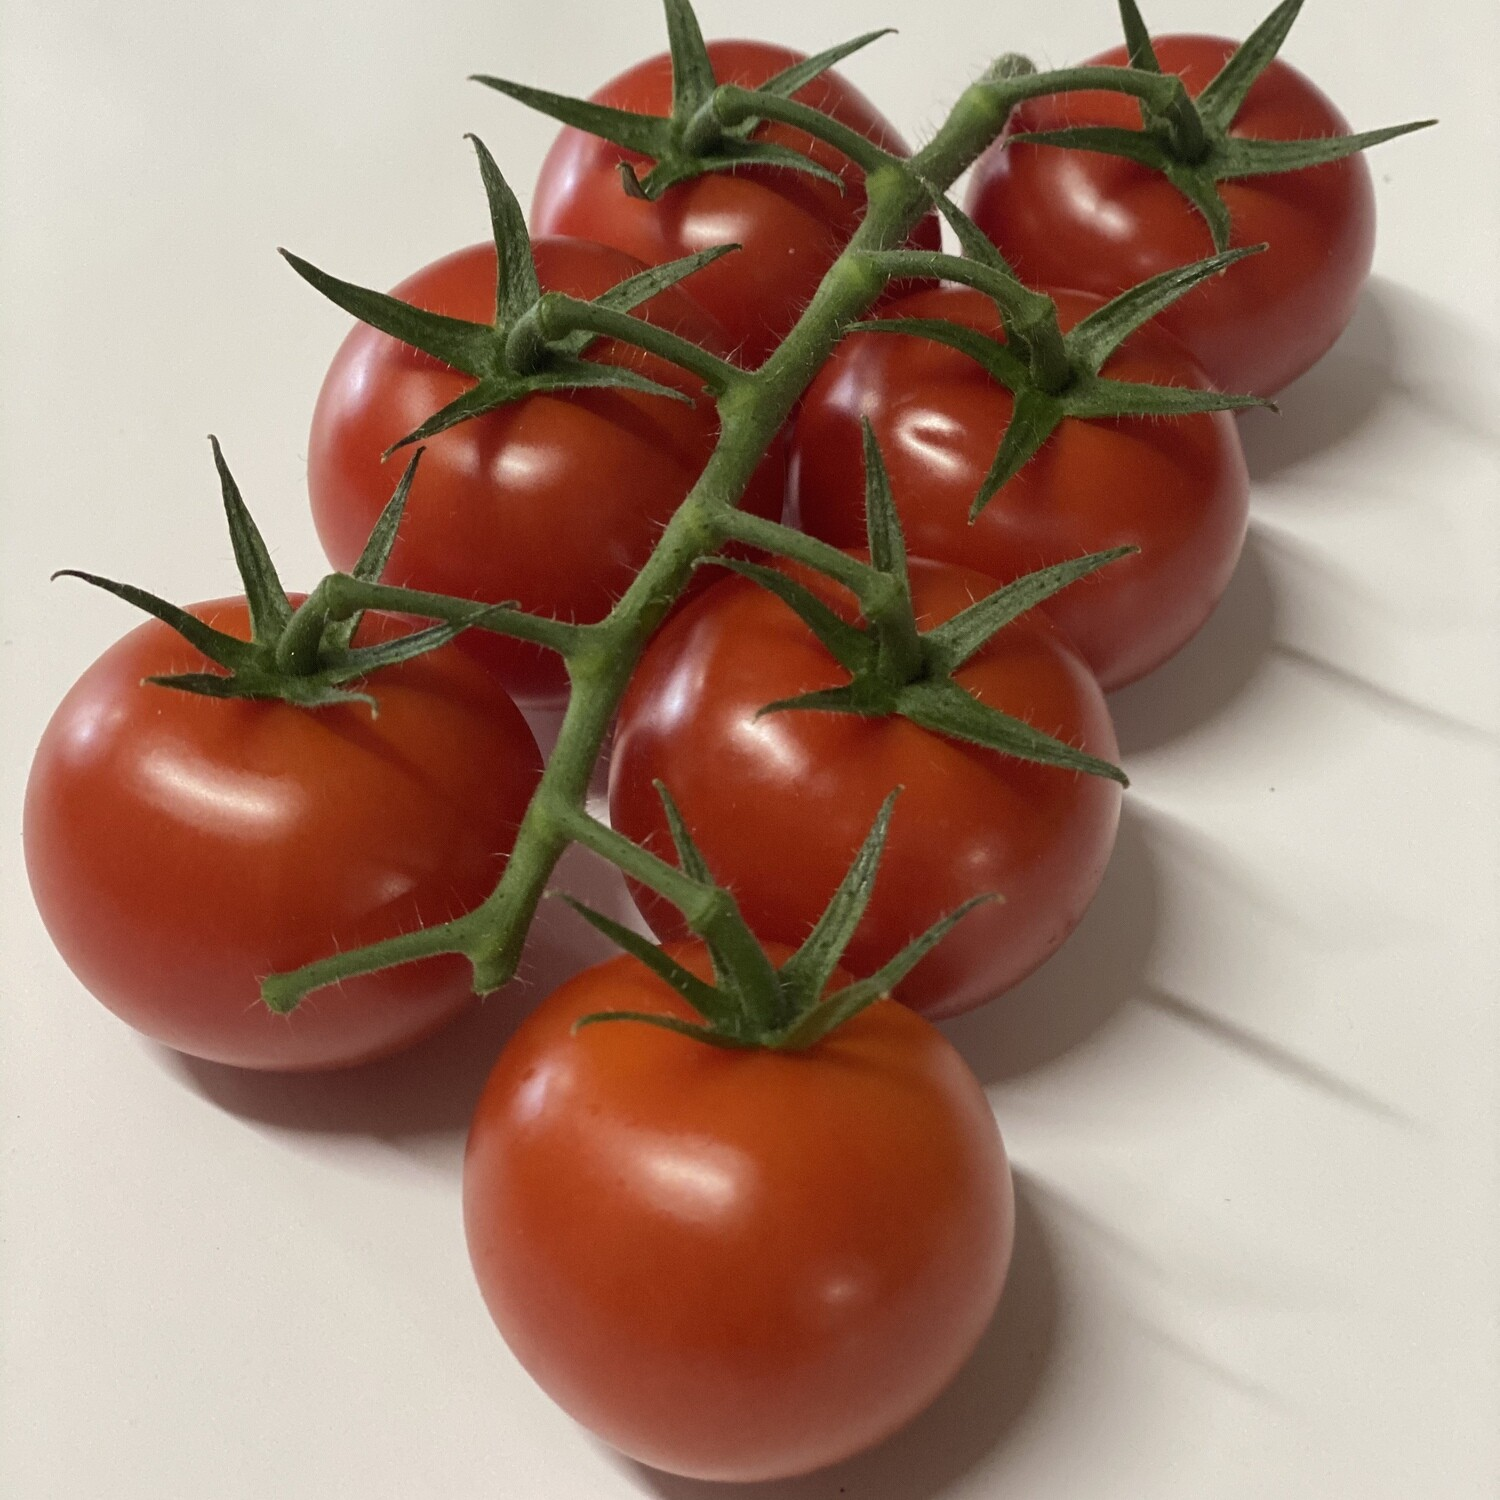 CHERRY TOMATOES TRUSS (8-12 count) PACK